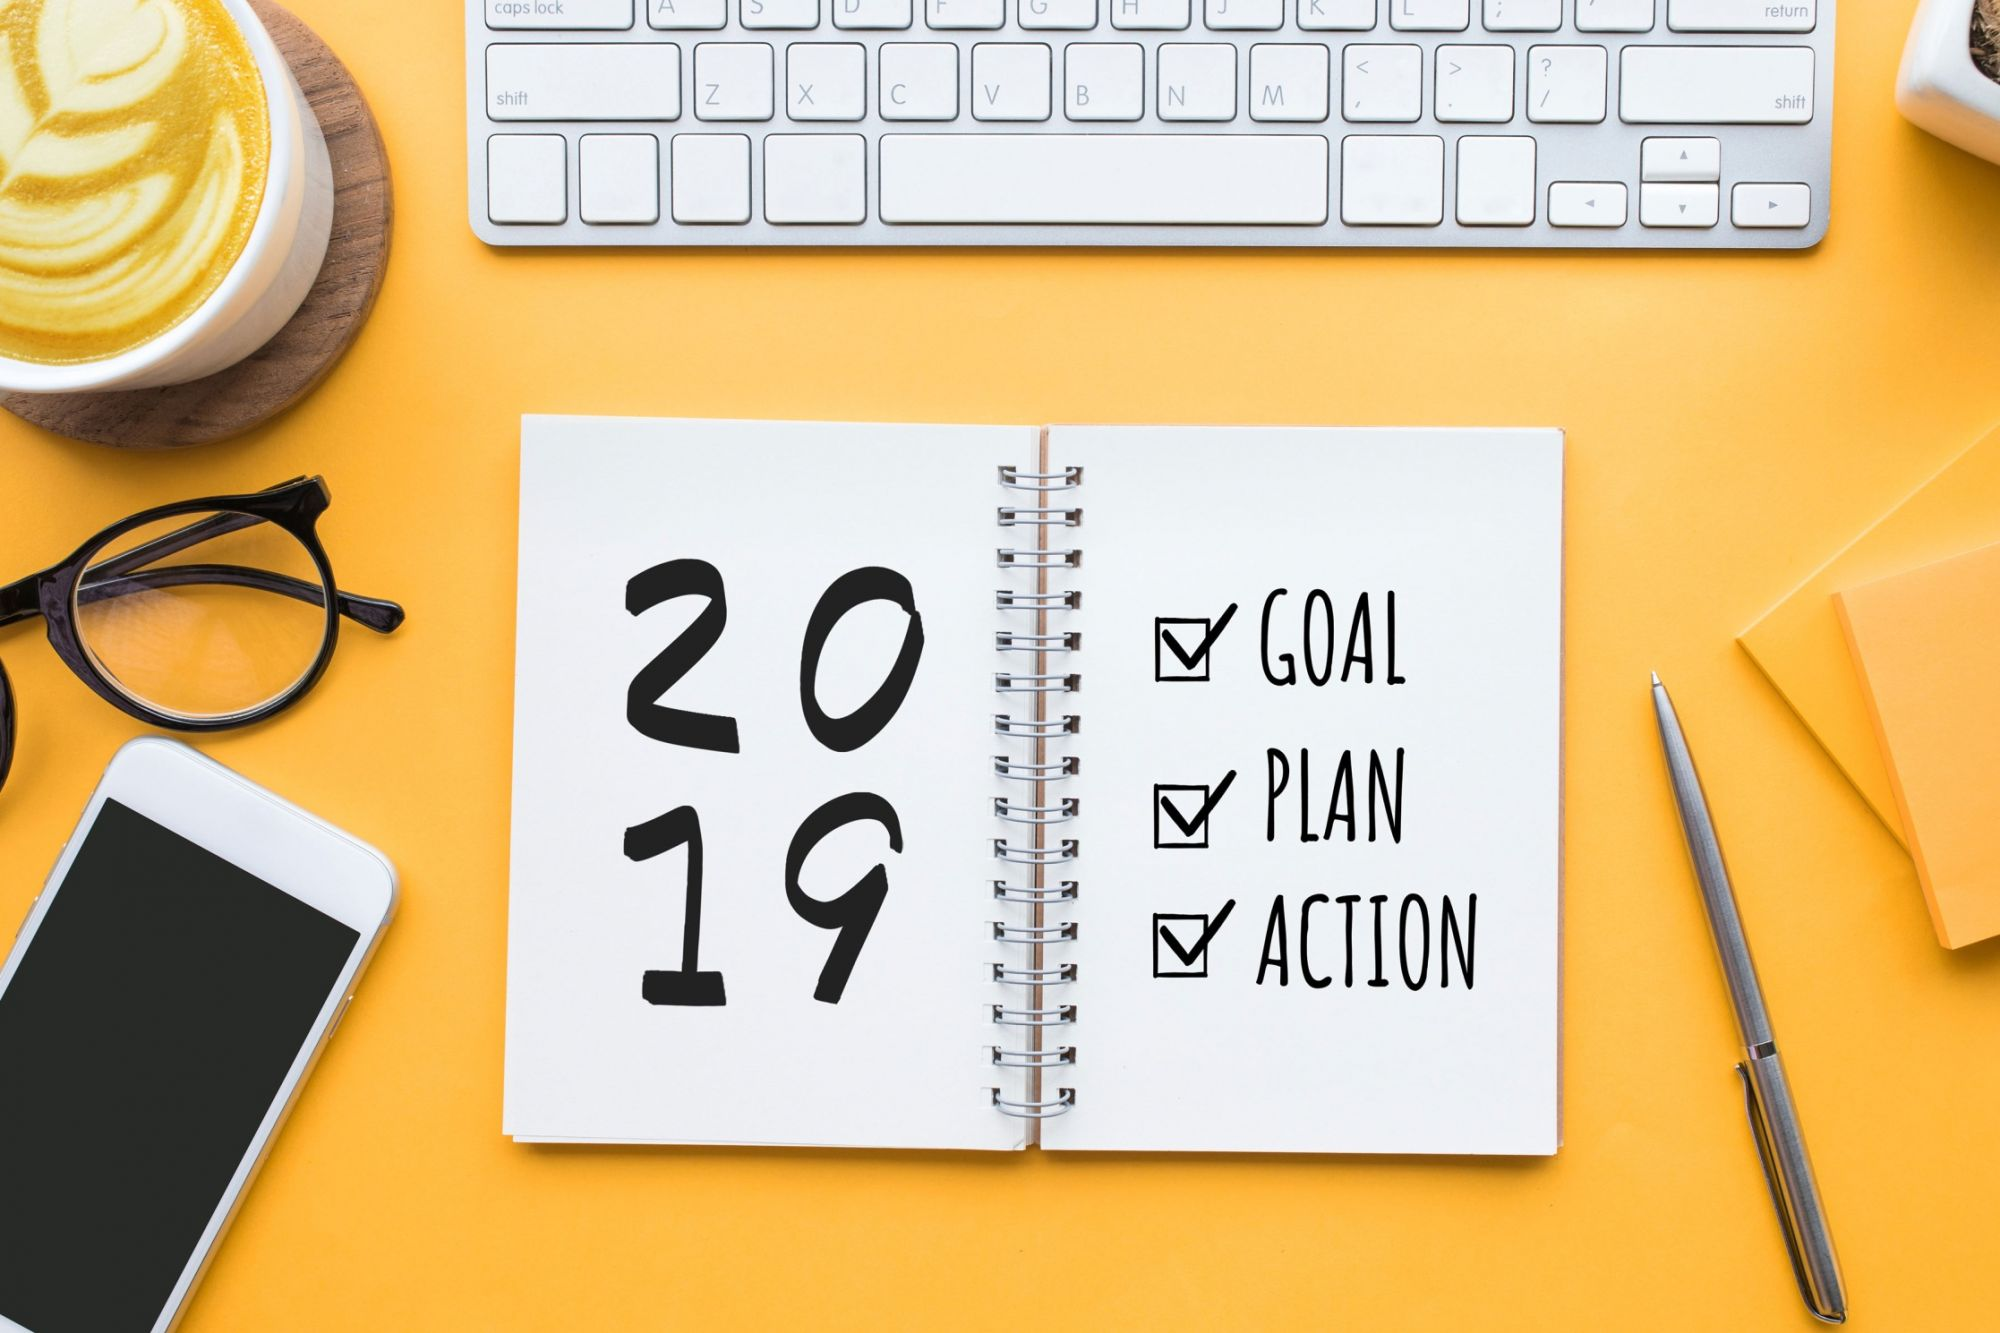 Beyond Productivity: Tips and Tools for Making Progress Toward Important Goals